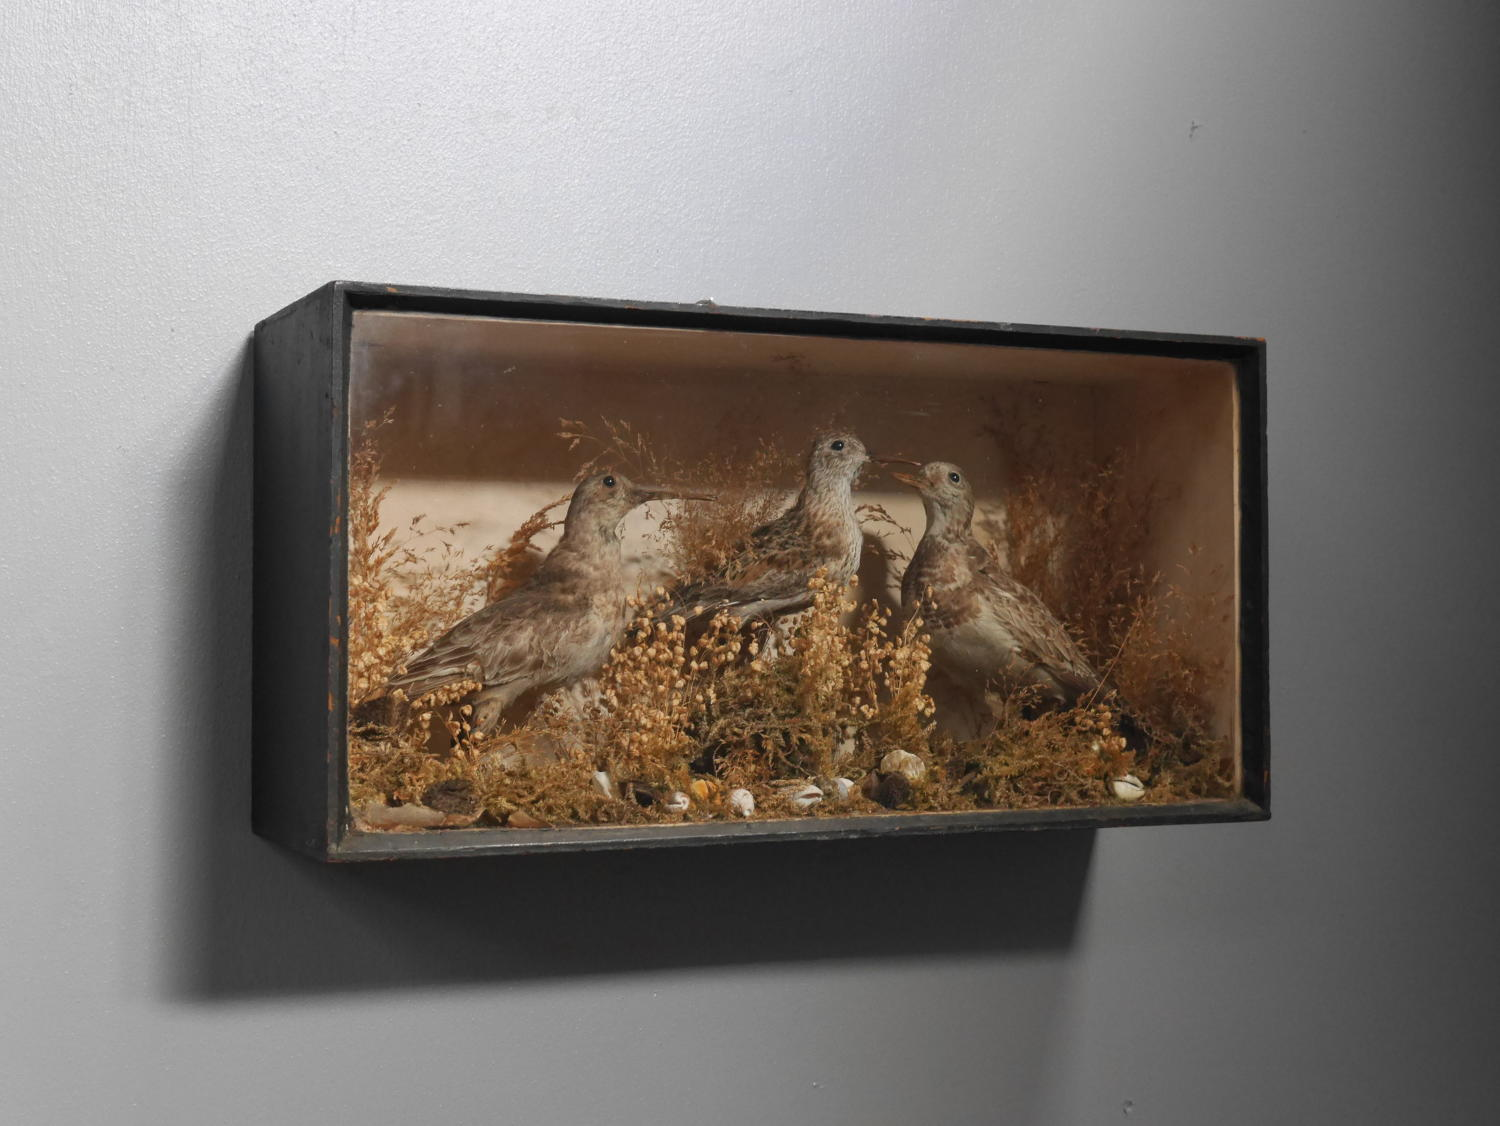 Victorian Taxidermy Sandpipers Diorama